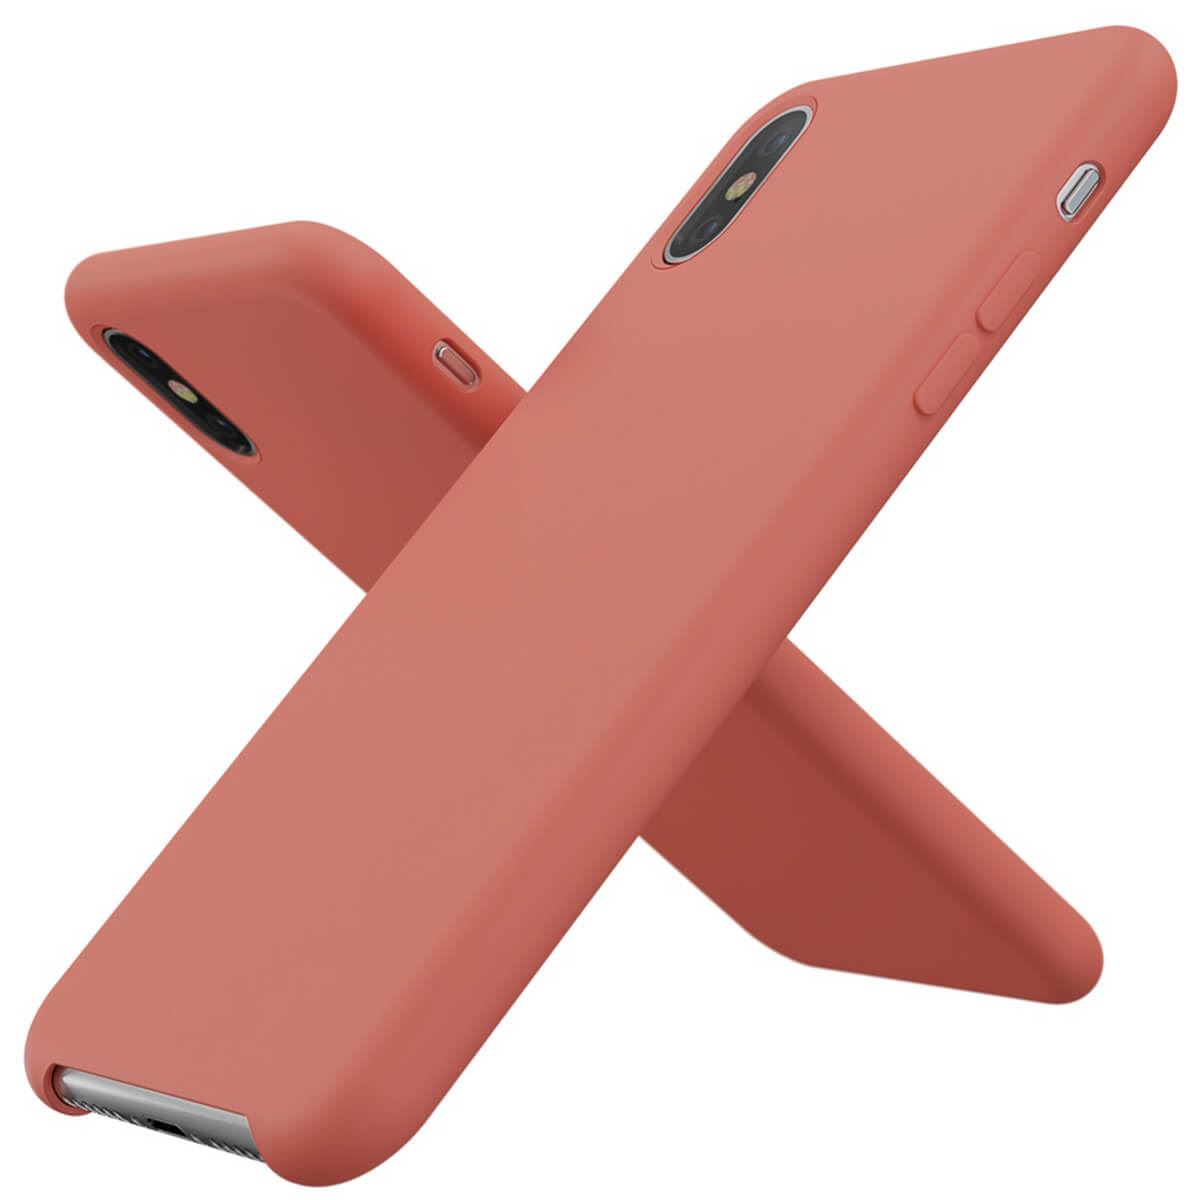 Liquid-Silicone-Phone-Case-For-Apple-iPhone-Soft-Shockproof-Matte-Back-Cover thumbnail 14